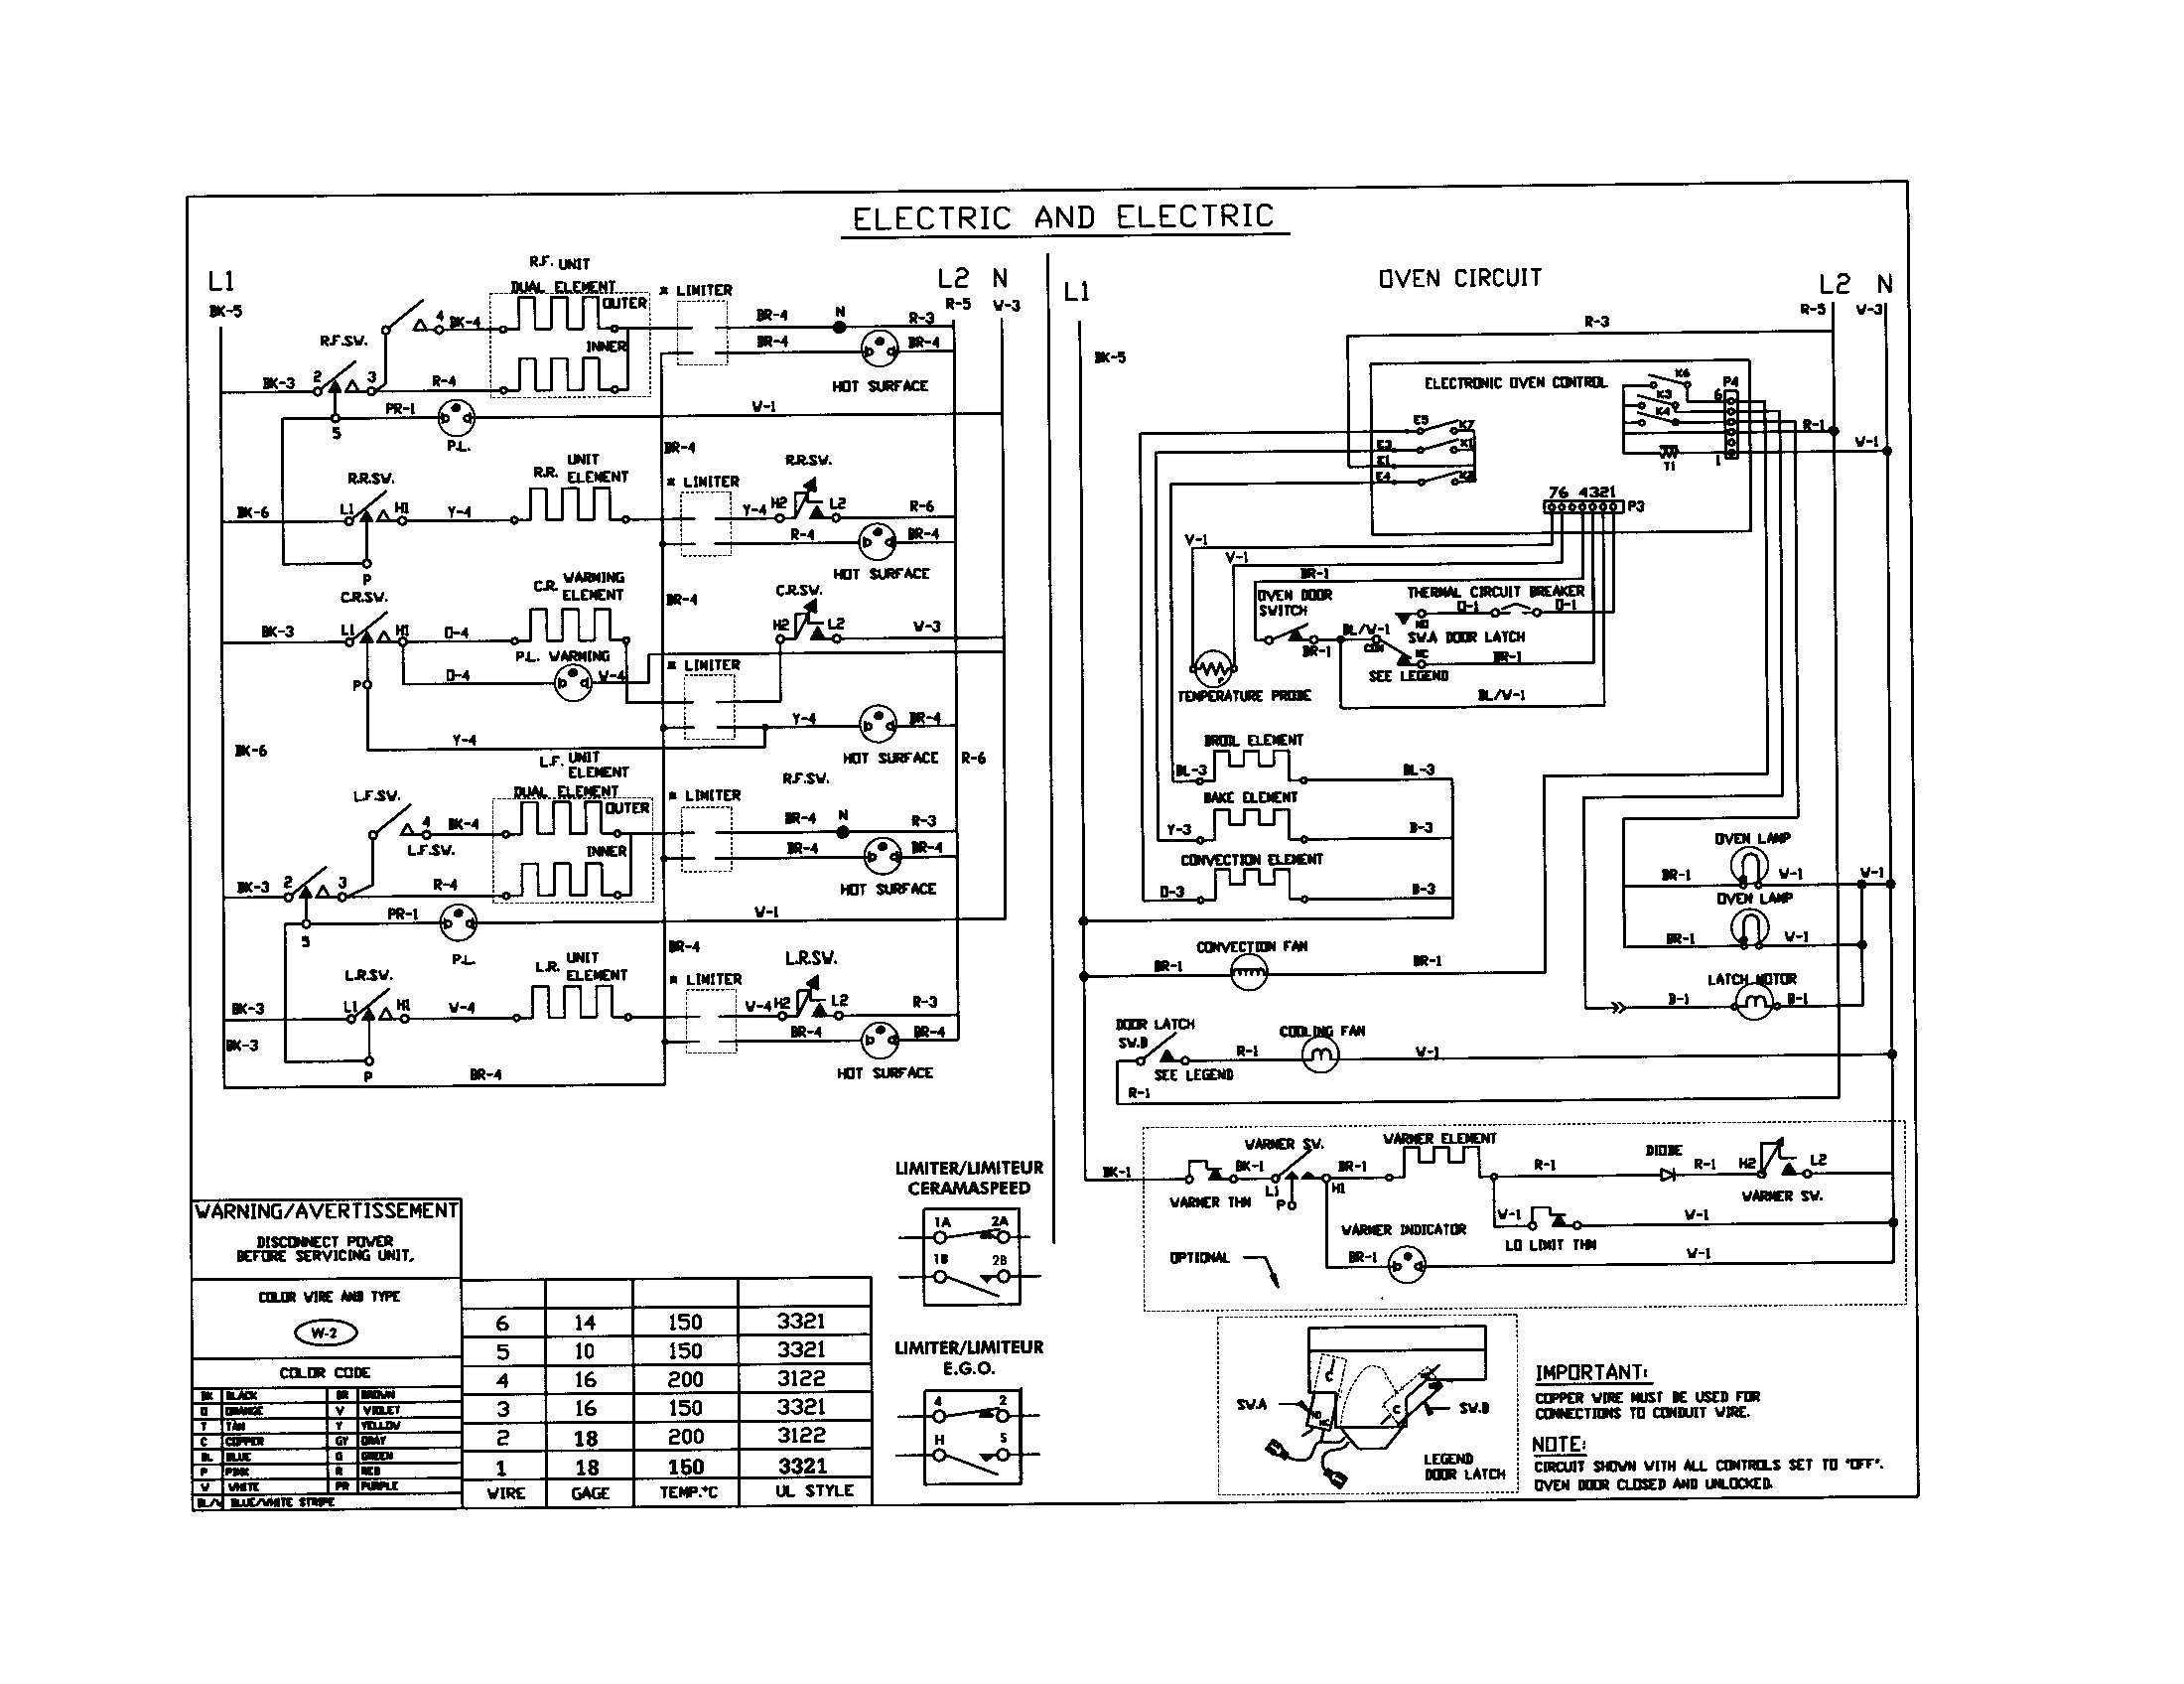 kenmore washer wiring diagram Collection-Sears whole House Warranty Plan and Wiring Diagram Wiring Diagram Kenmore Washer Model Sears 17 6-i